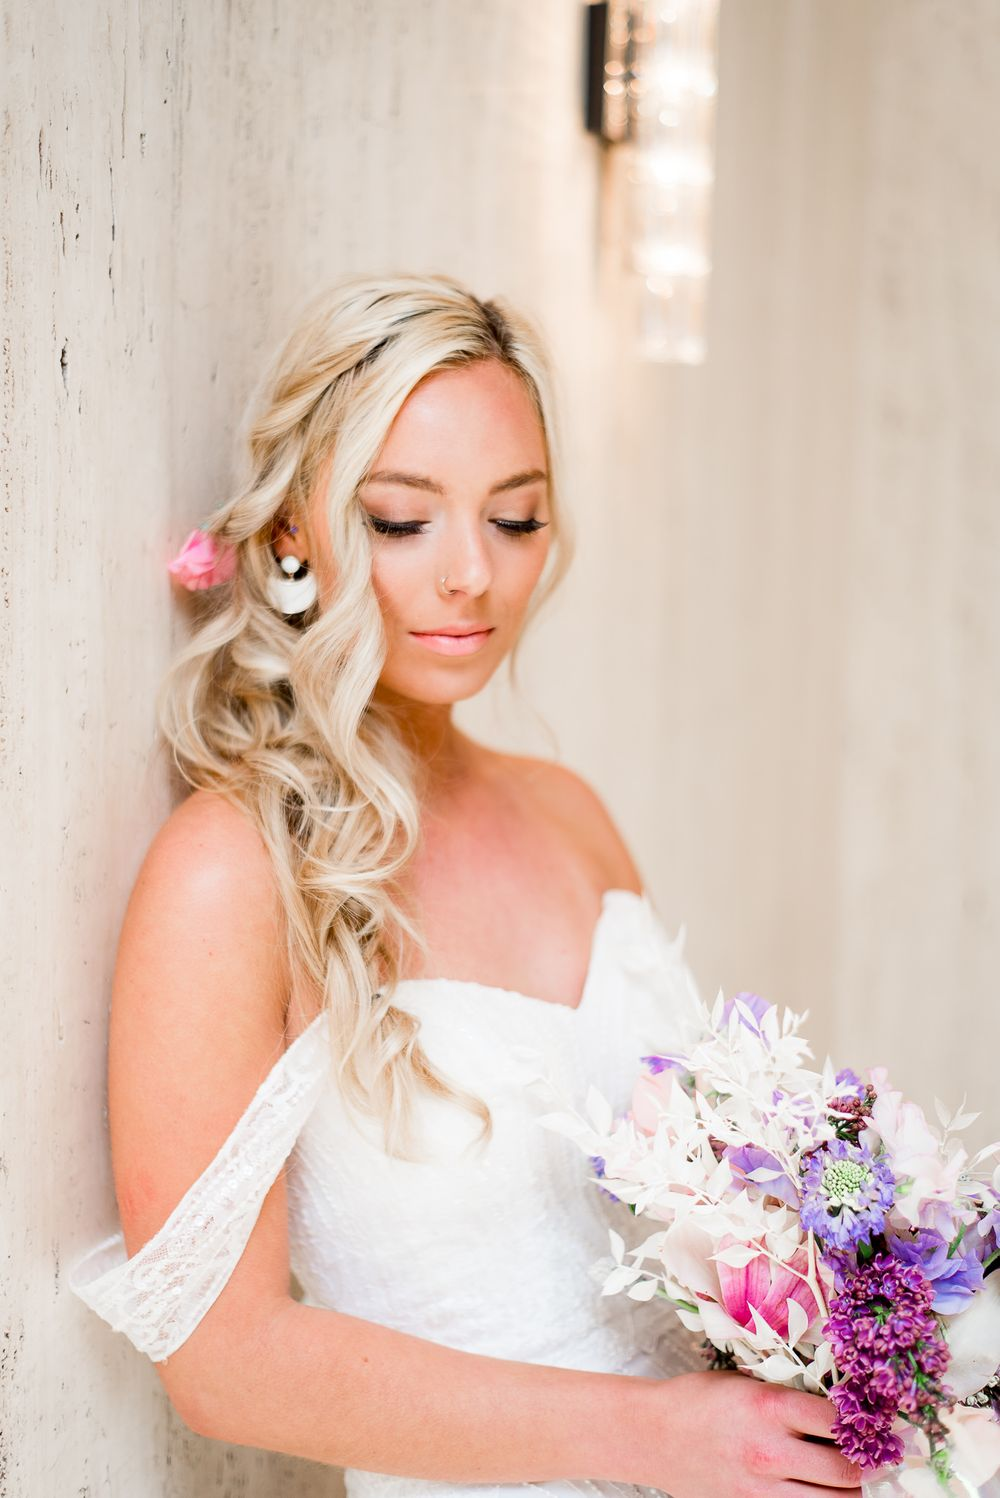 blonde bride with messy braid leaning on marble wall at pink purple white wedding bouquet